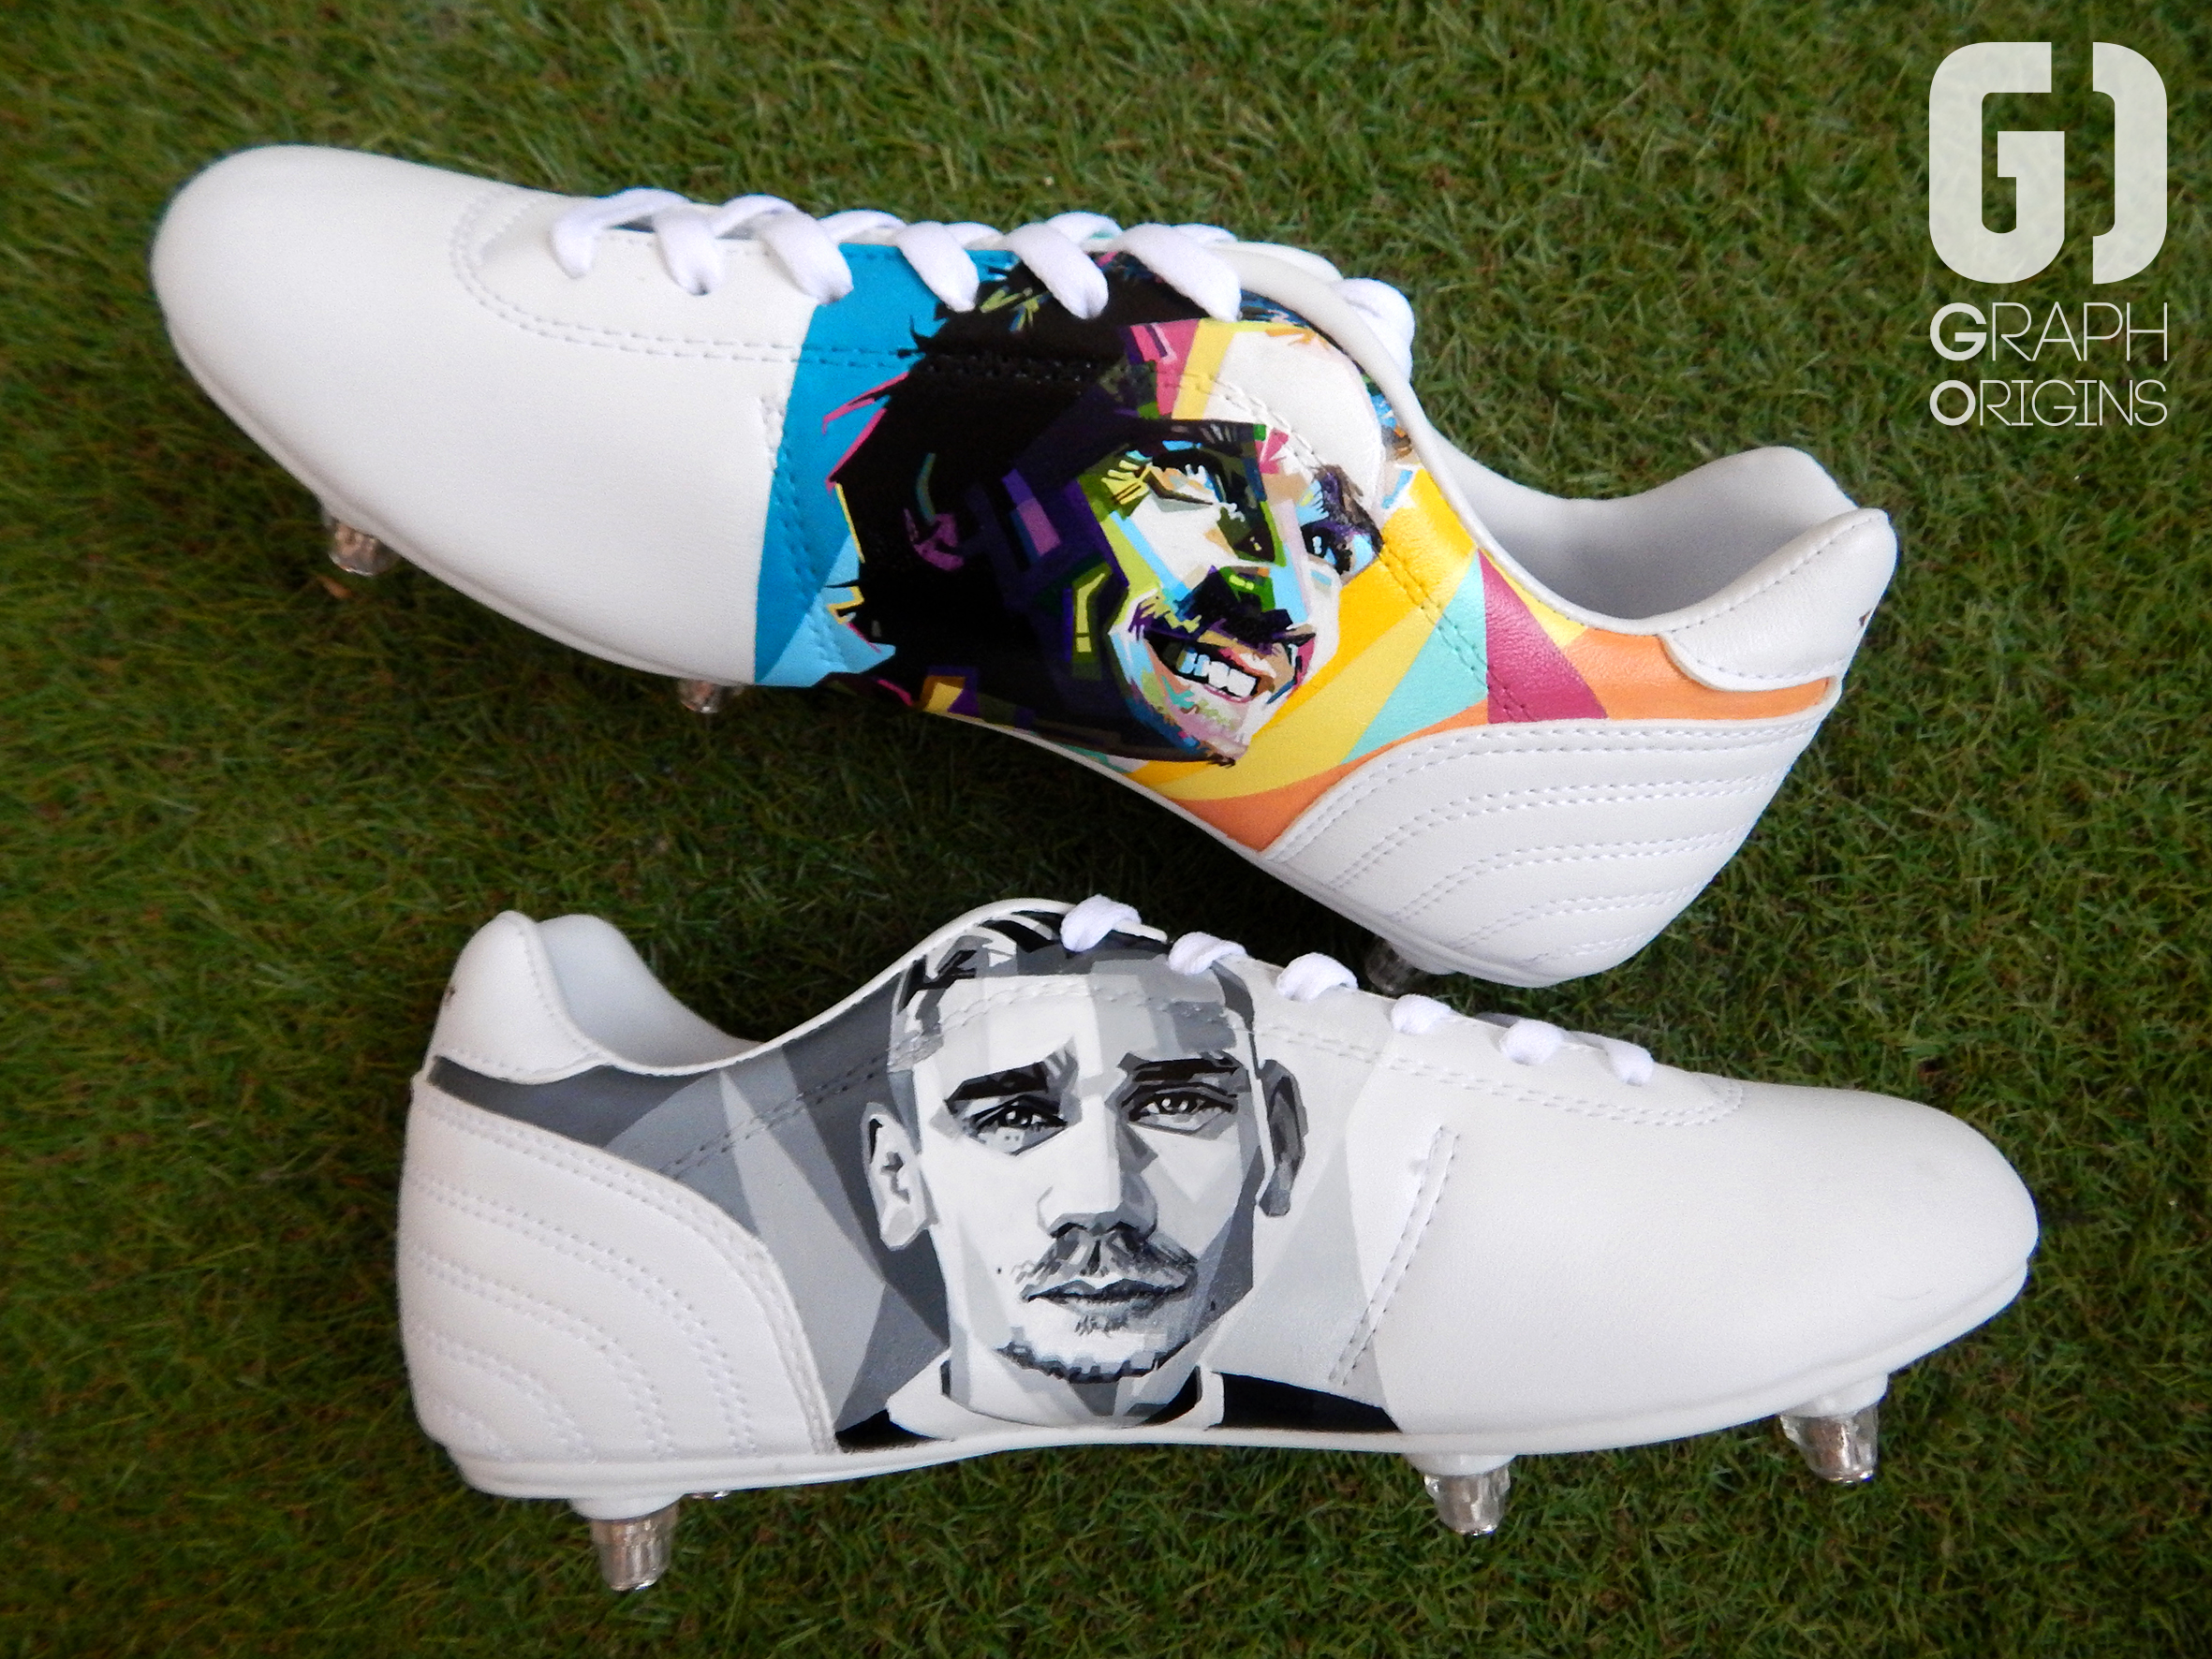 Custom chaussures football pantofola d'oro griezmann graph origins 3